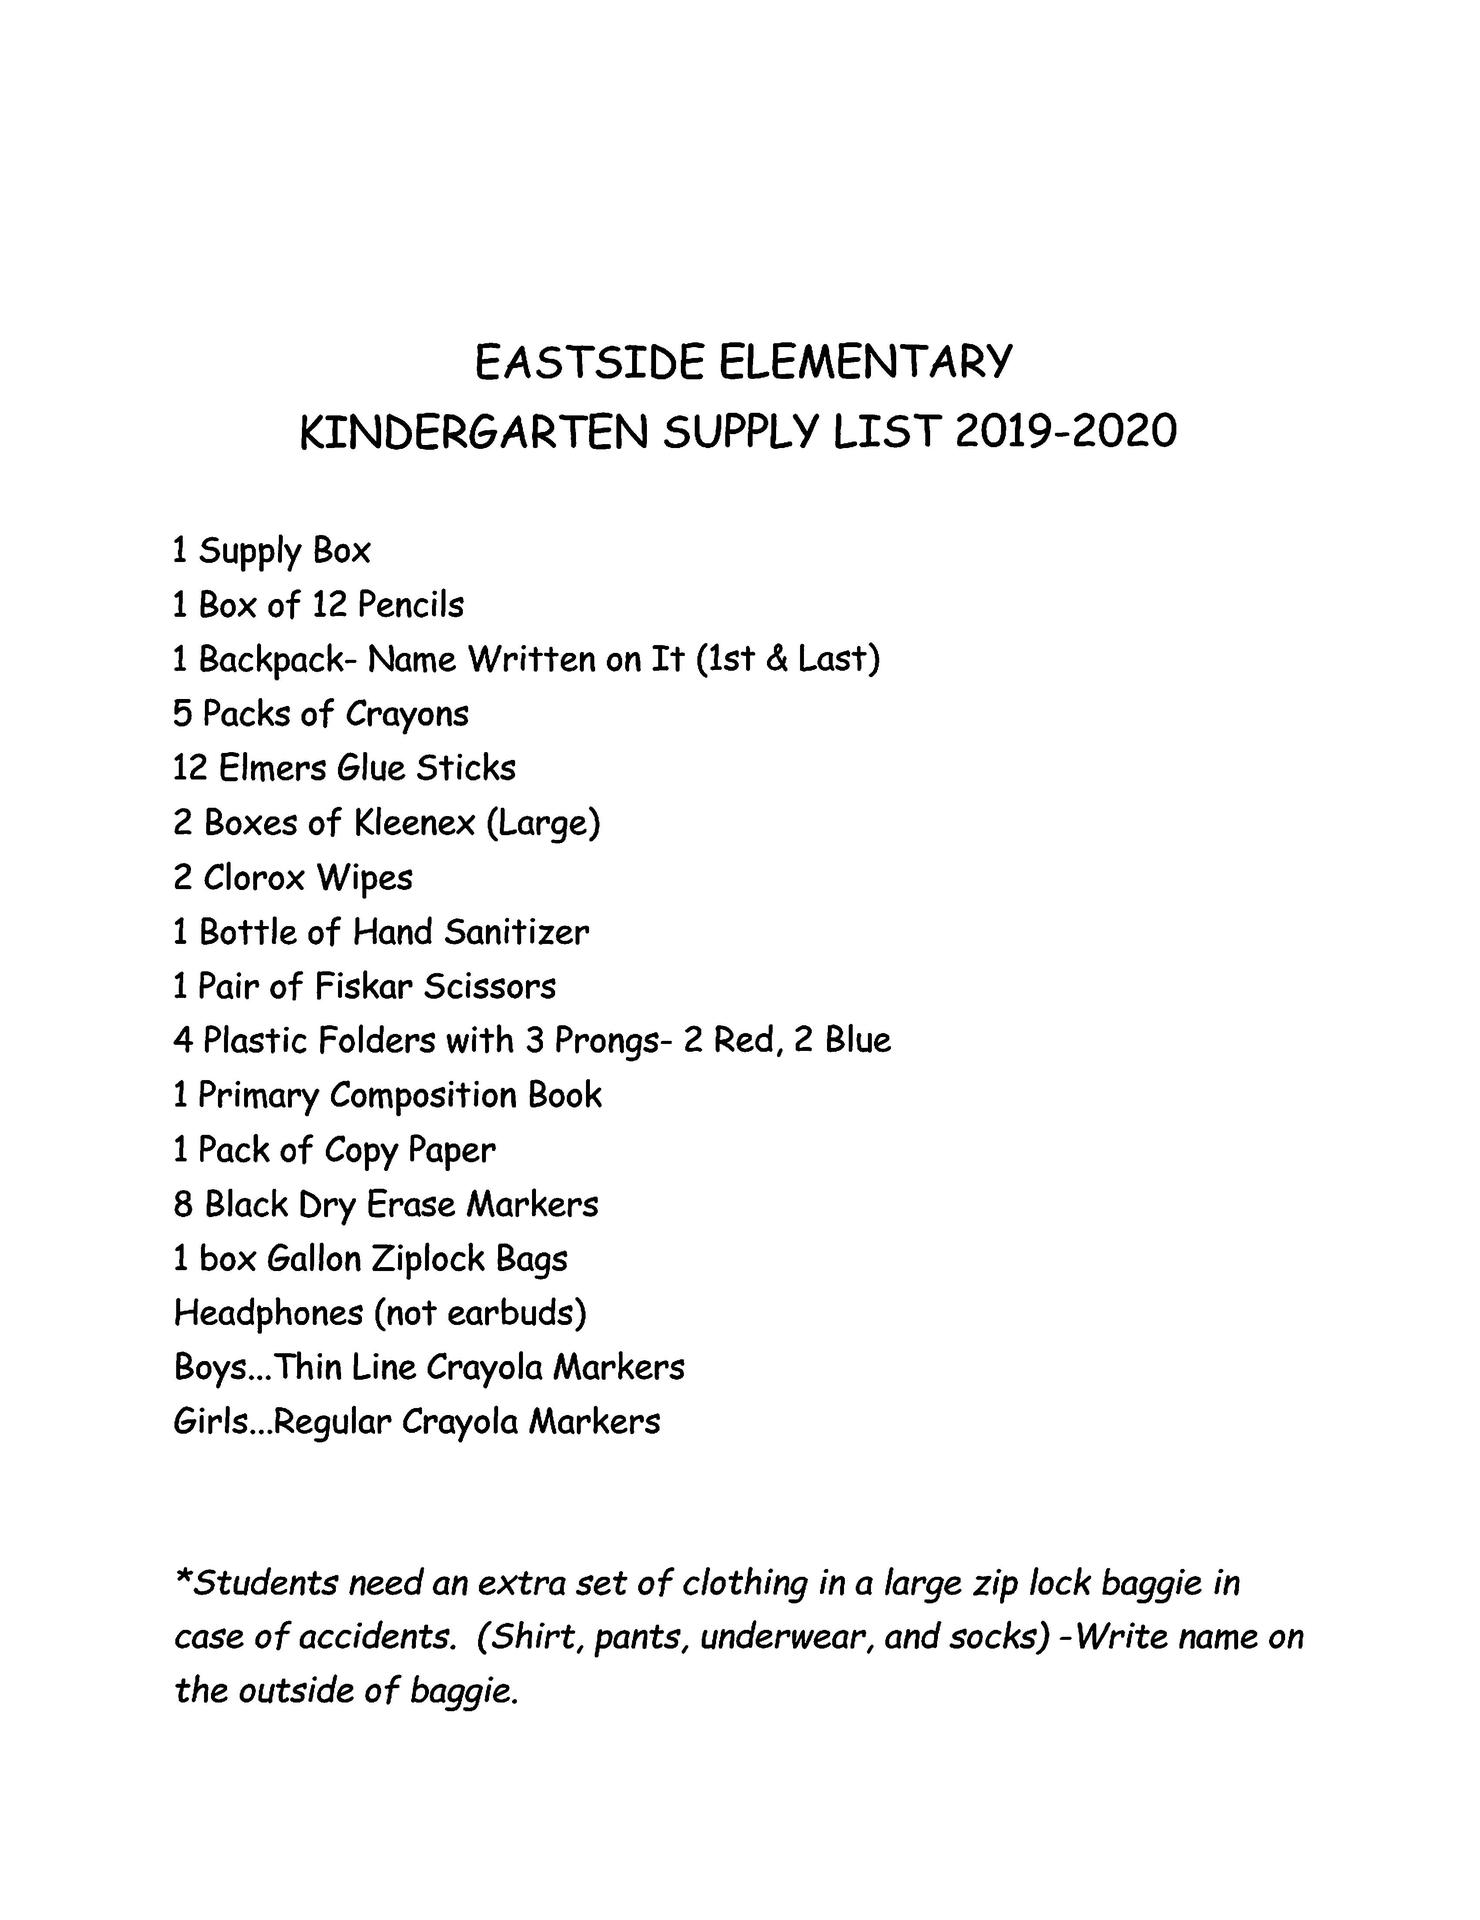 E2 K supply lists for 2019-20